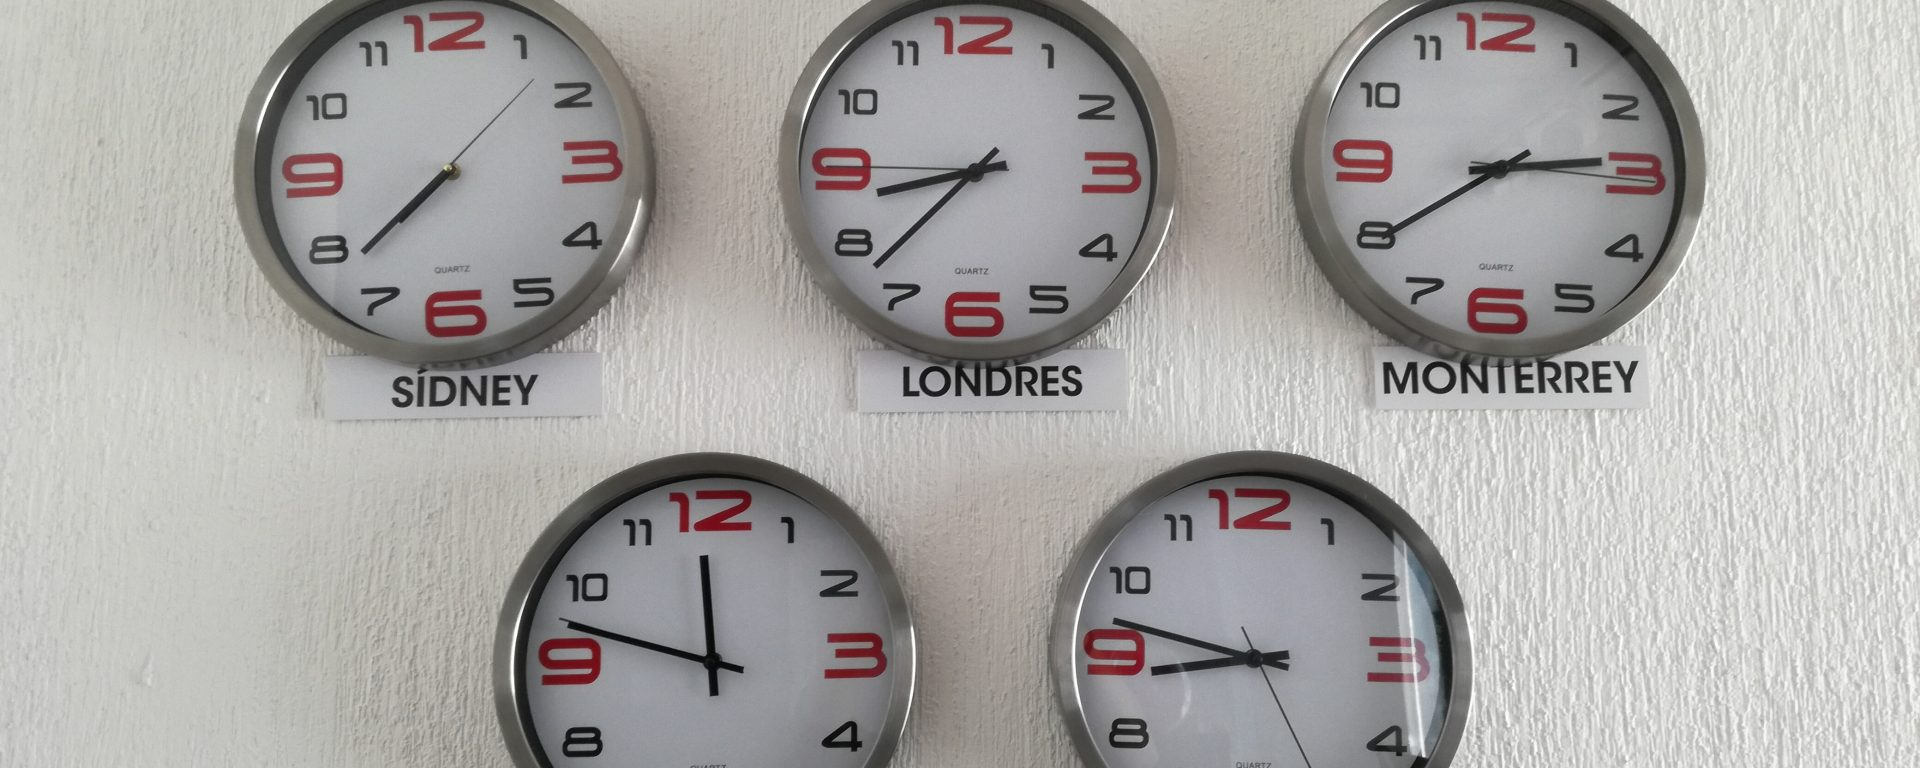 India & You - Managing a Business Across Time Zones